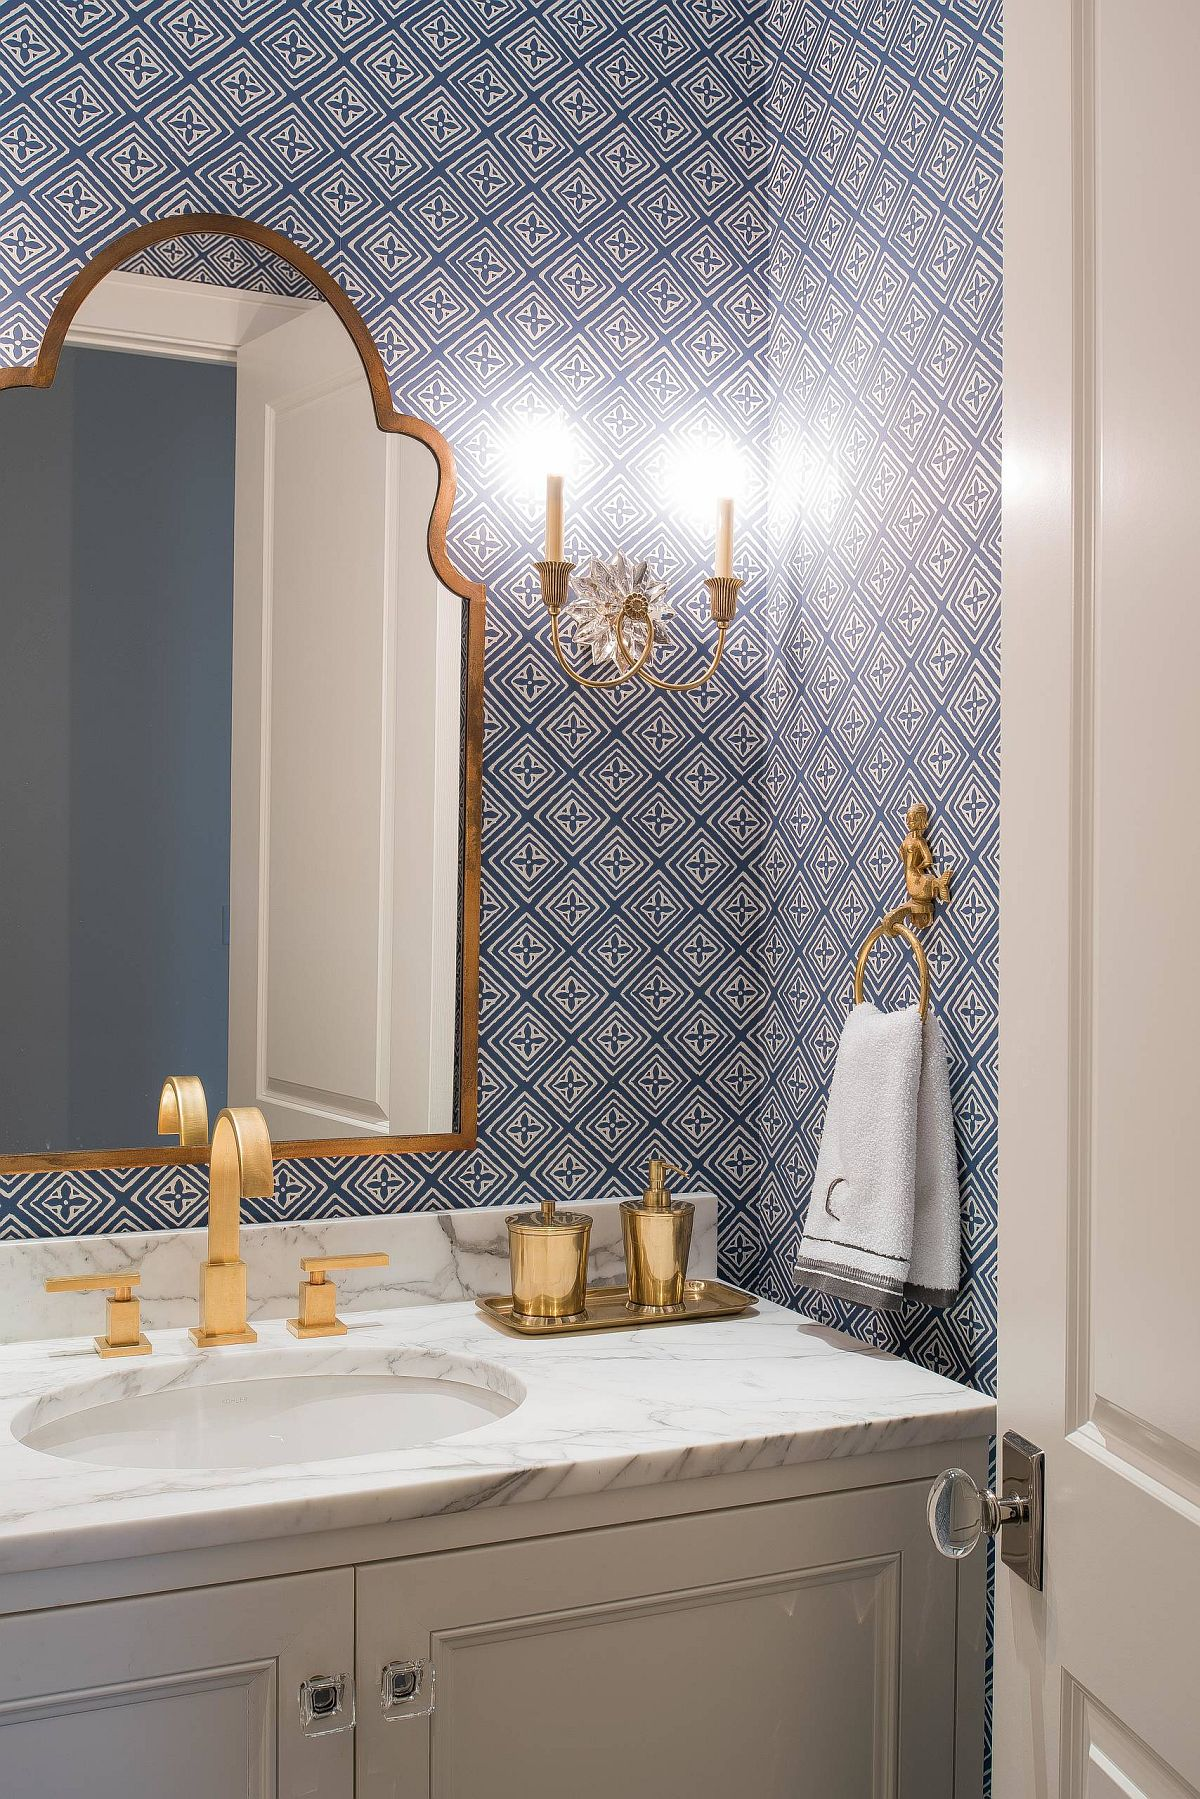 Find the perfect sconce light for your renovated bathroom